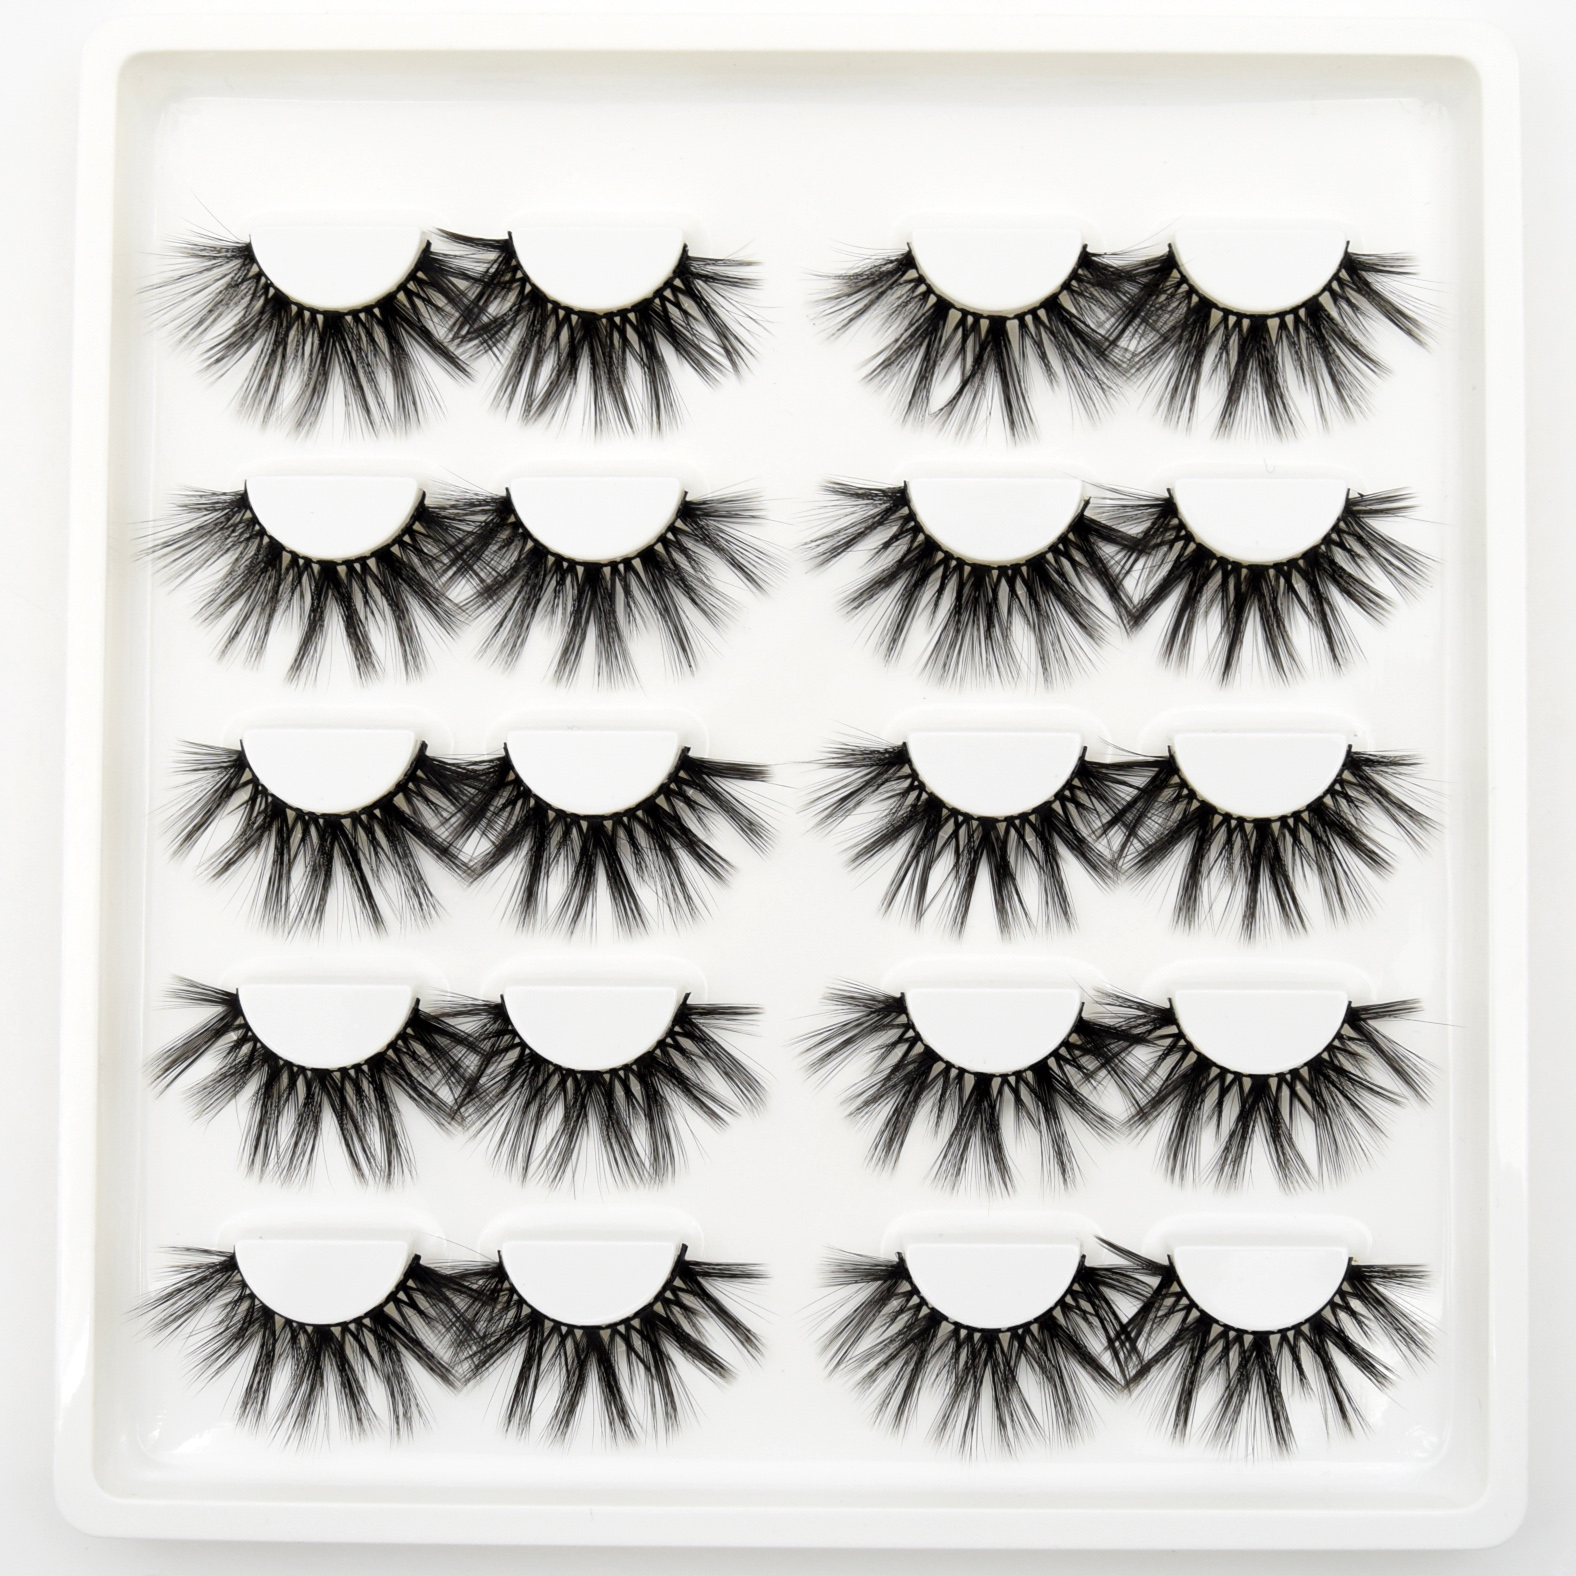 10 Pairs Eyelashes Wholesale Handmade Mink Eyelashes 3d Mink Hair Lashes Dramatic Lashes Makeup 3d High Volume False Eyelashes